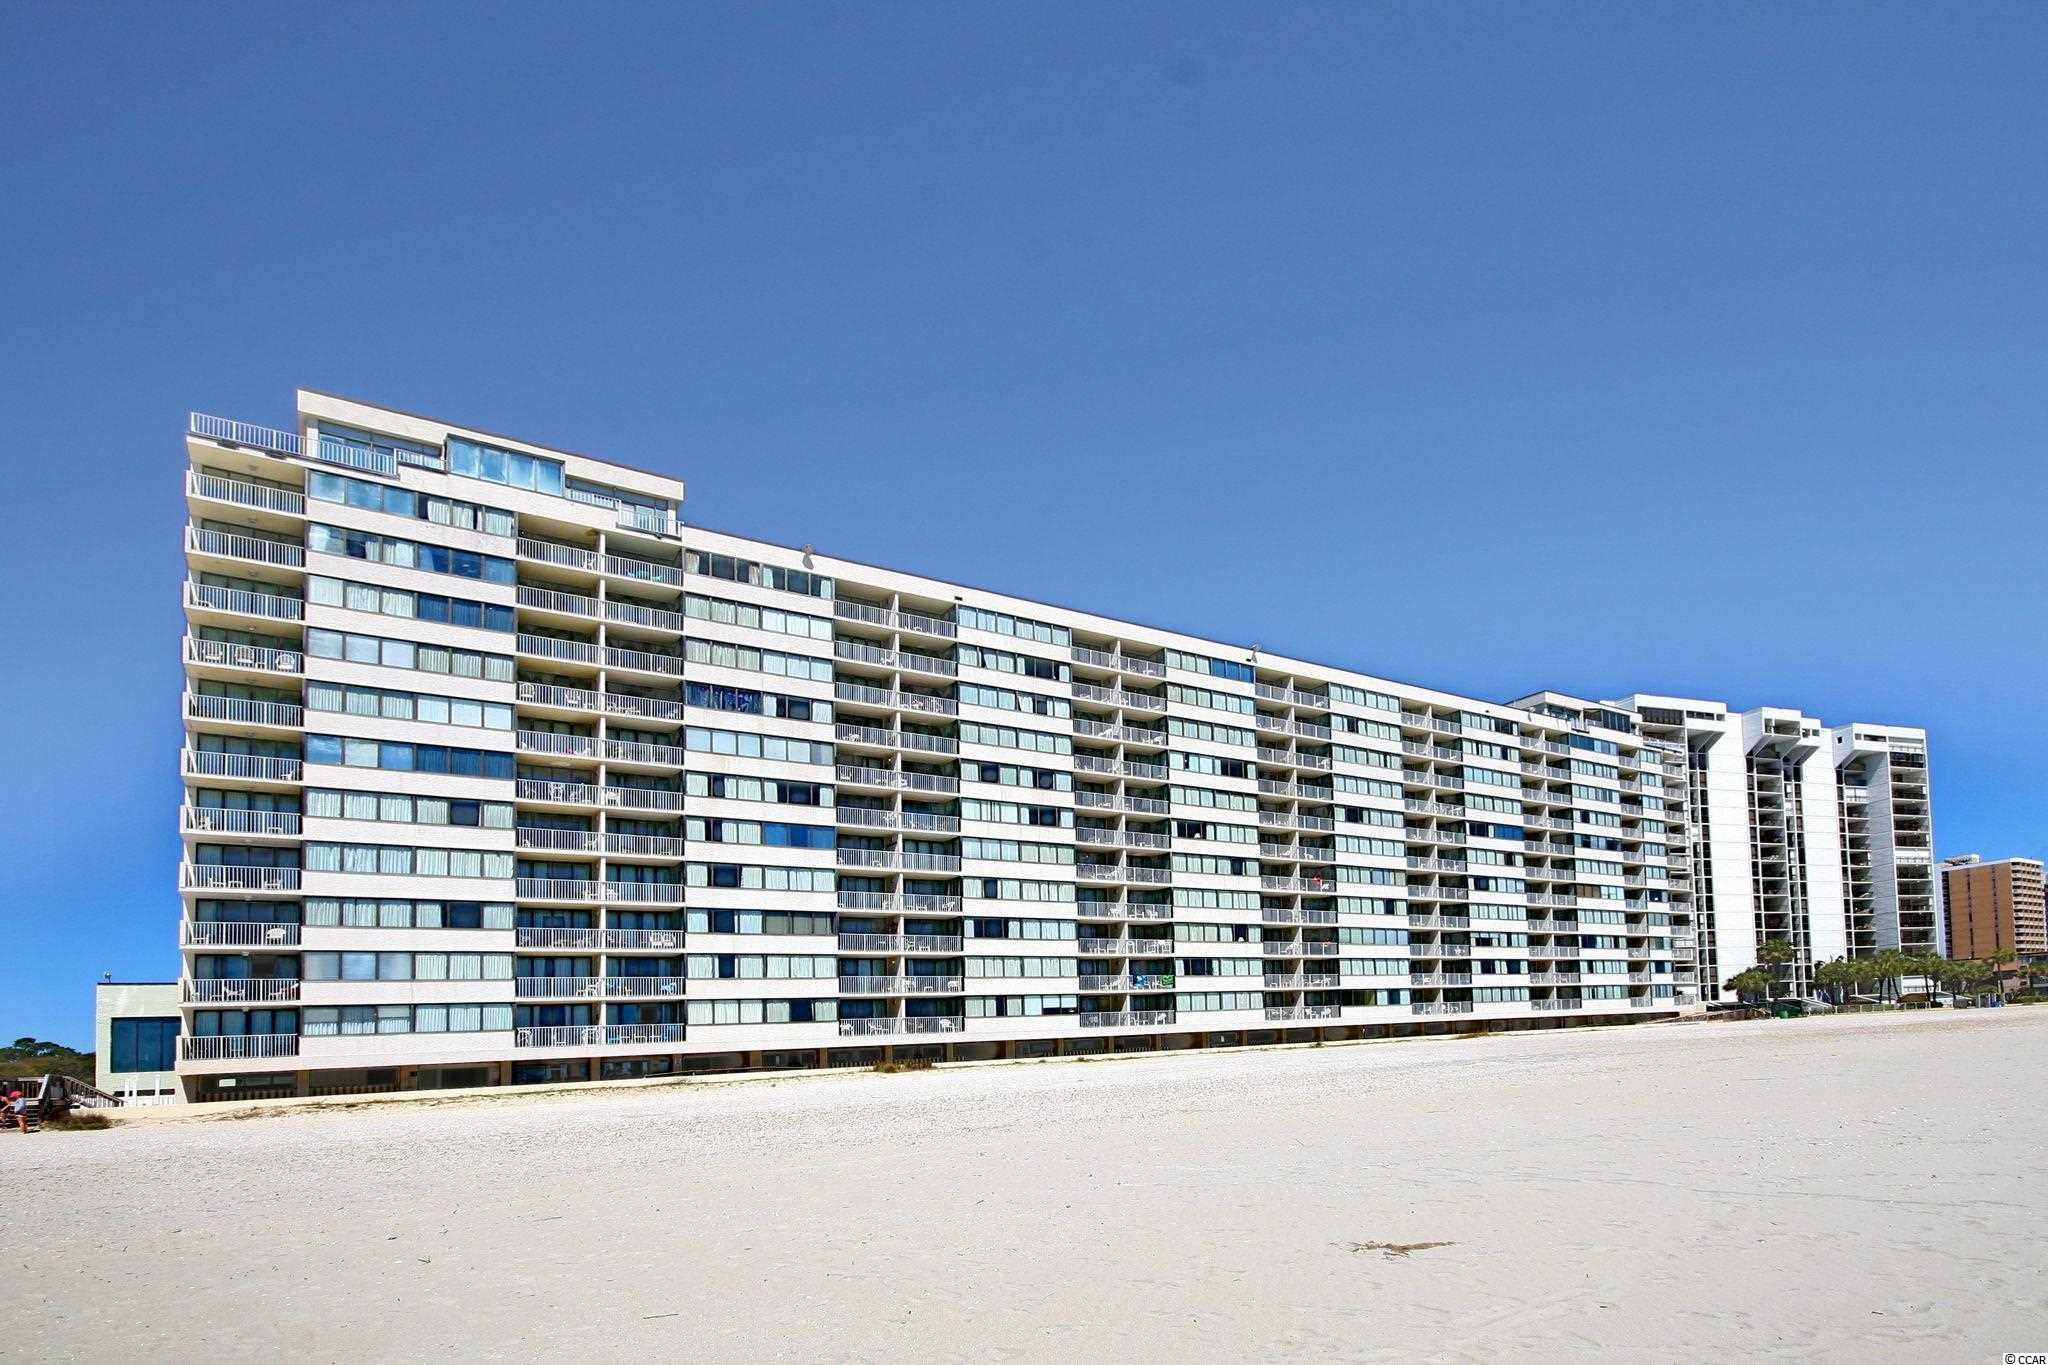 Completely renovated 1st floor, oceanfront unit, with an amazing view of the Atlantic Ocean. This 2 bedroom/2 bath unit is located in the Sand Beach Club and has several amenities such as indoor pool, outdoor pool, tennis courts, and is located just minutes from the heart of Myrtle Beach.